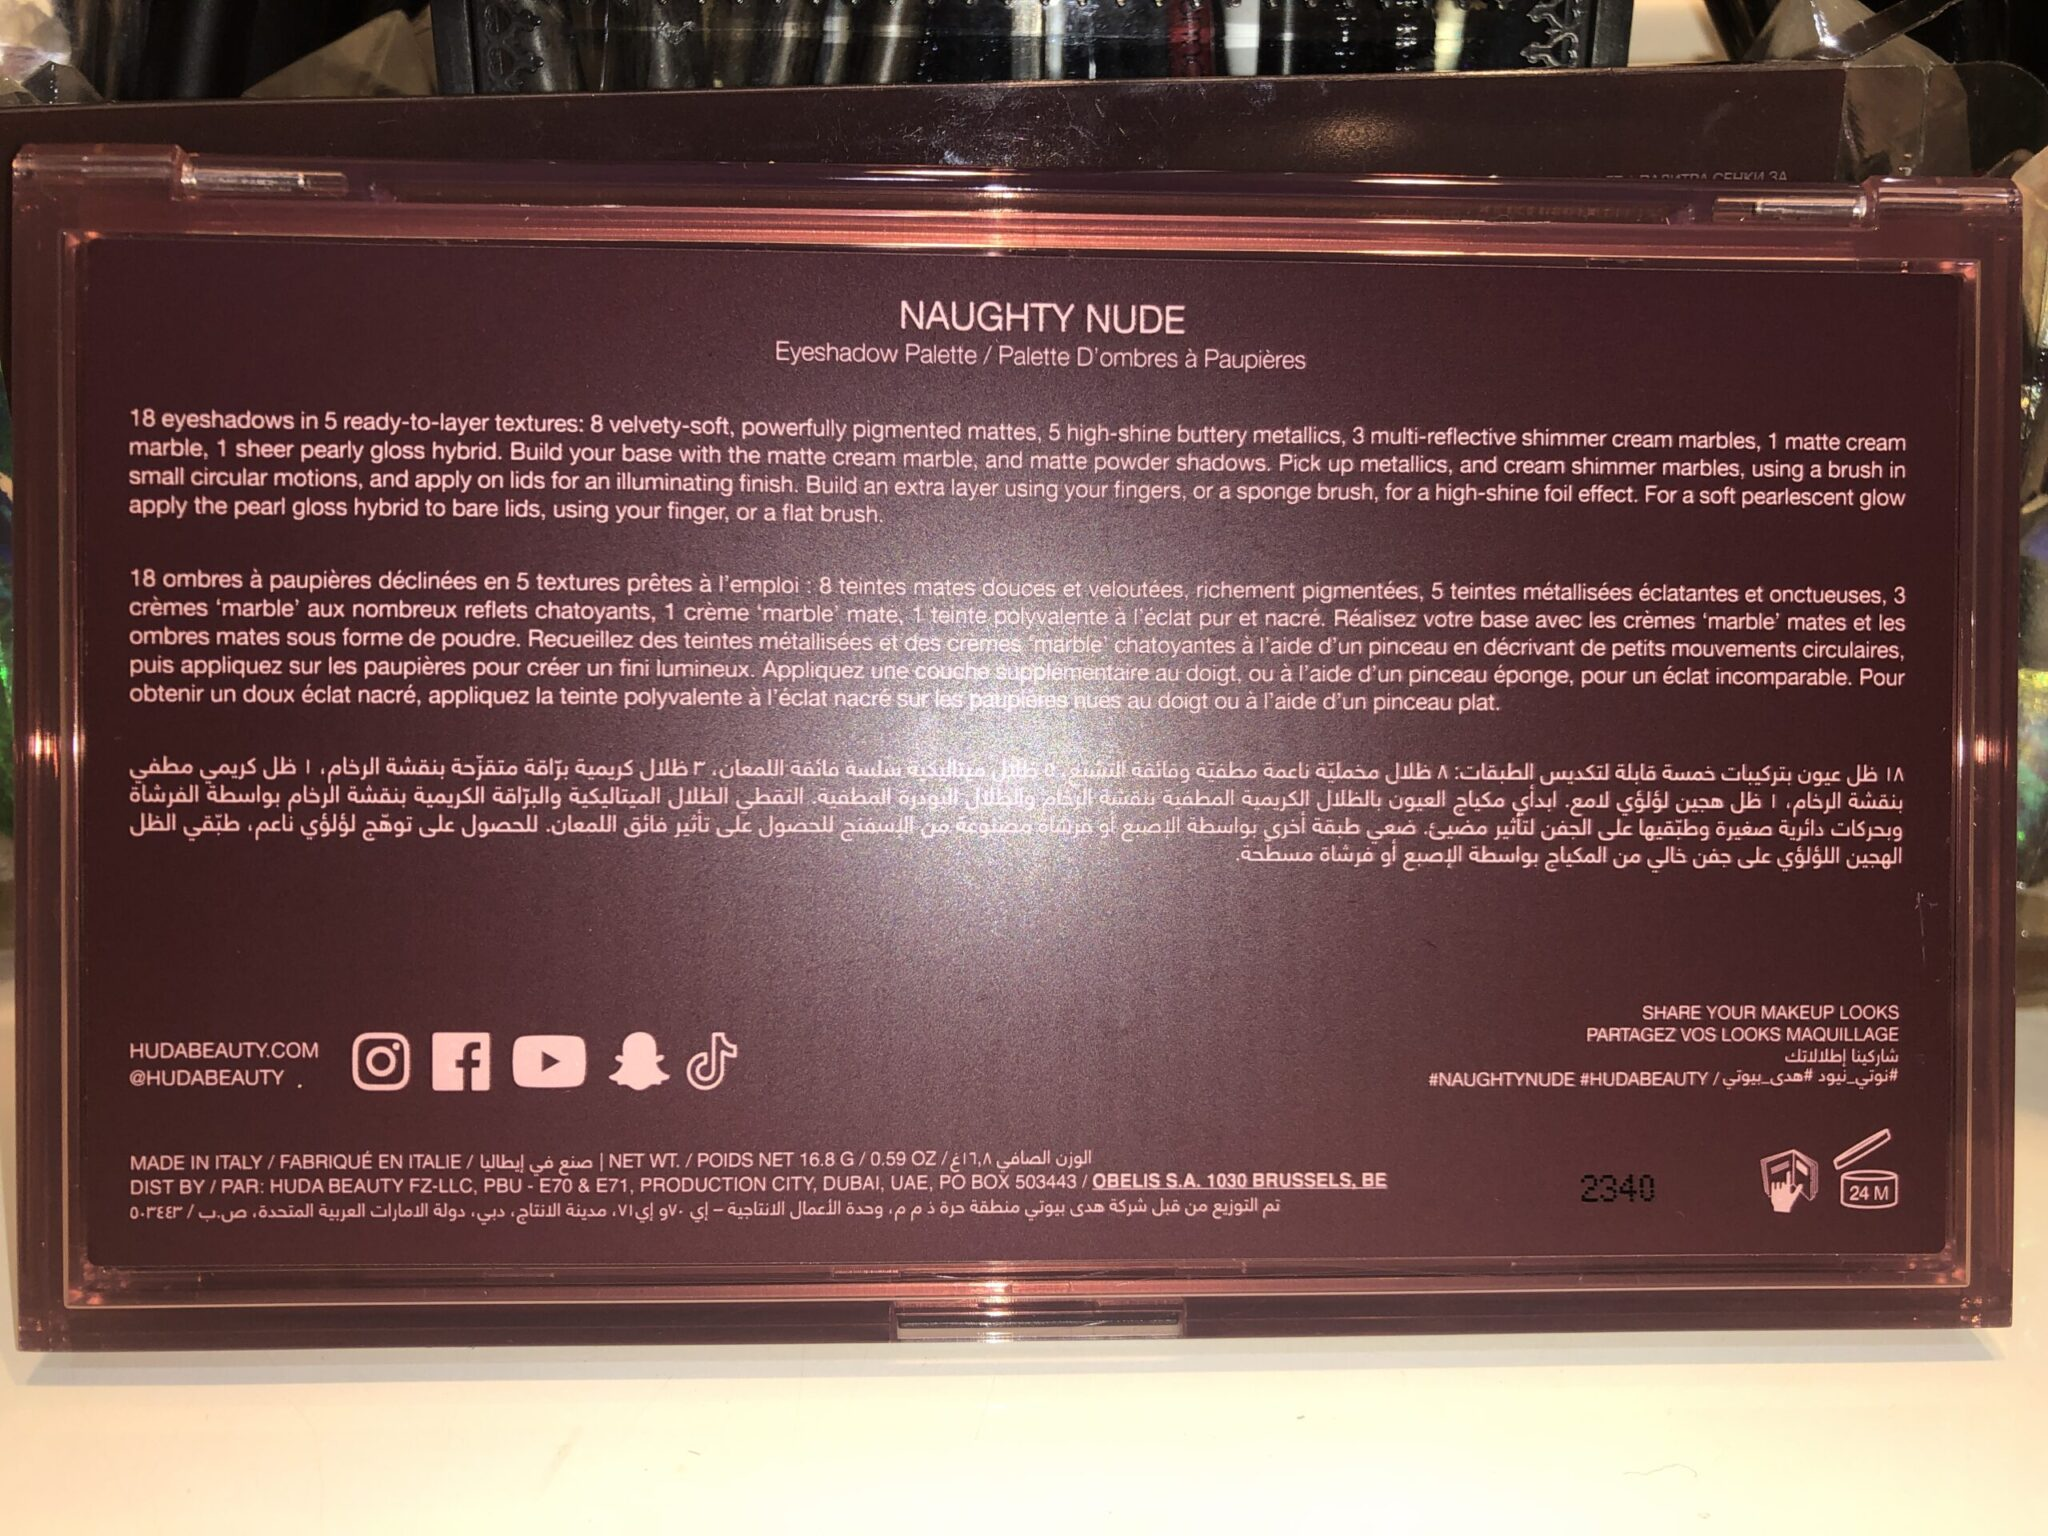 HUDA BEAUTY NAUGHTY NUDE EYESHADOW PALETTE THE BACK OF THE PALETTE